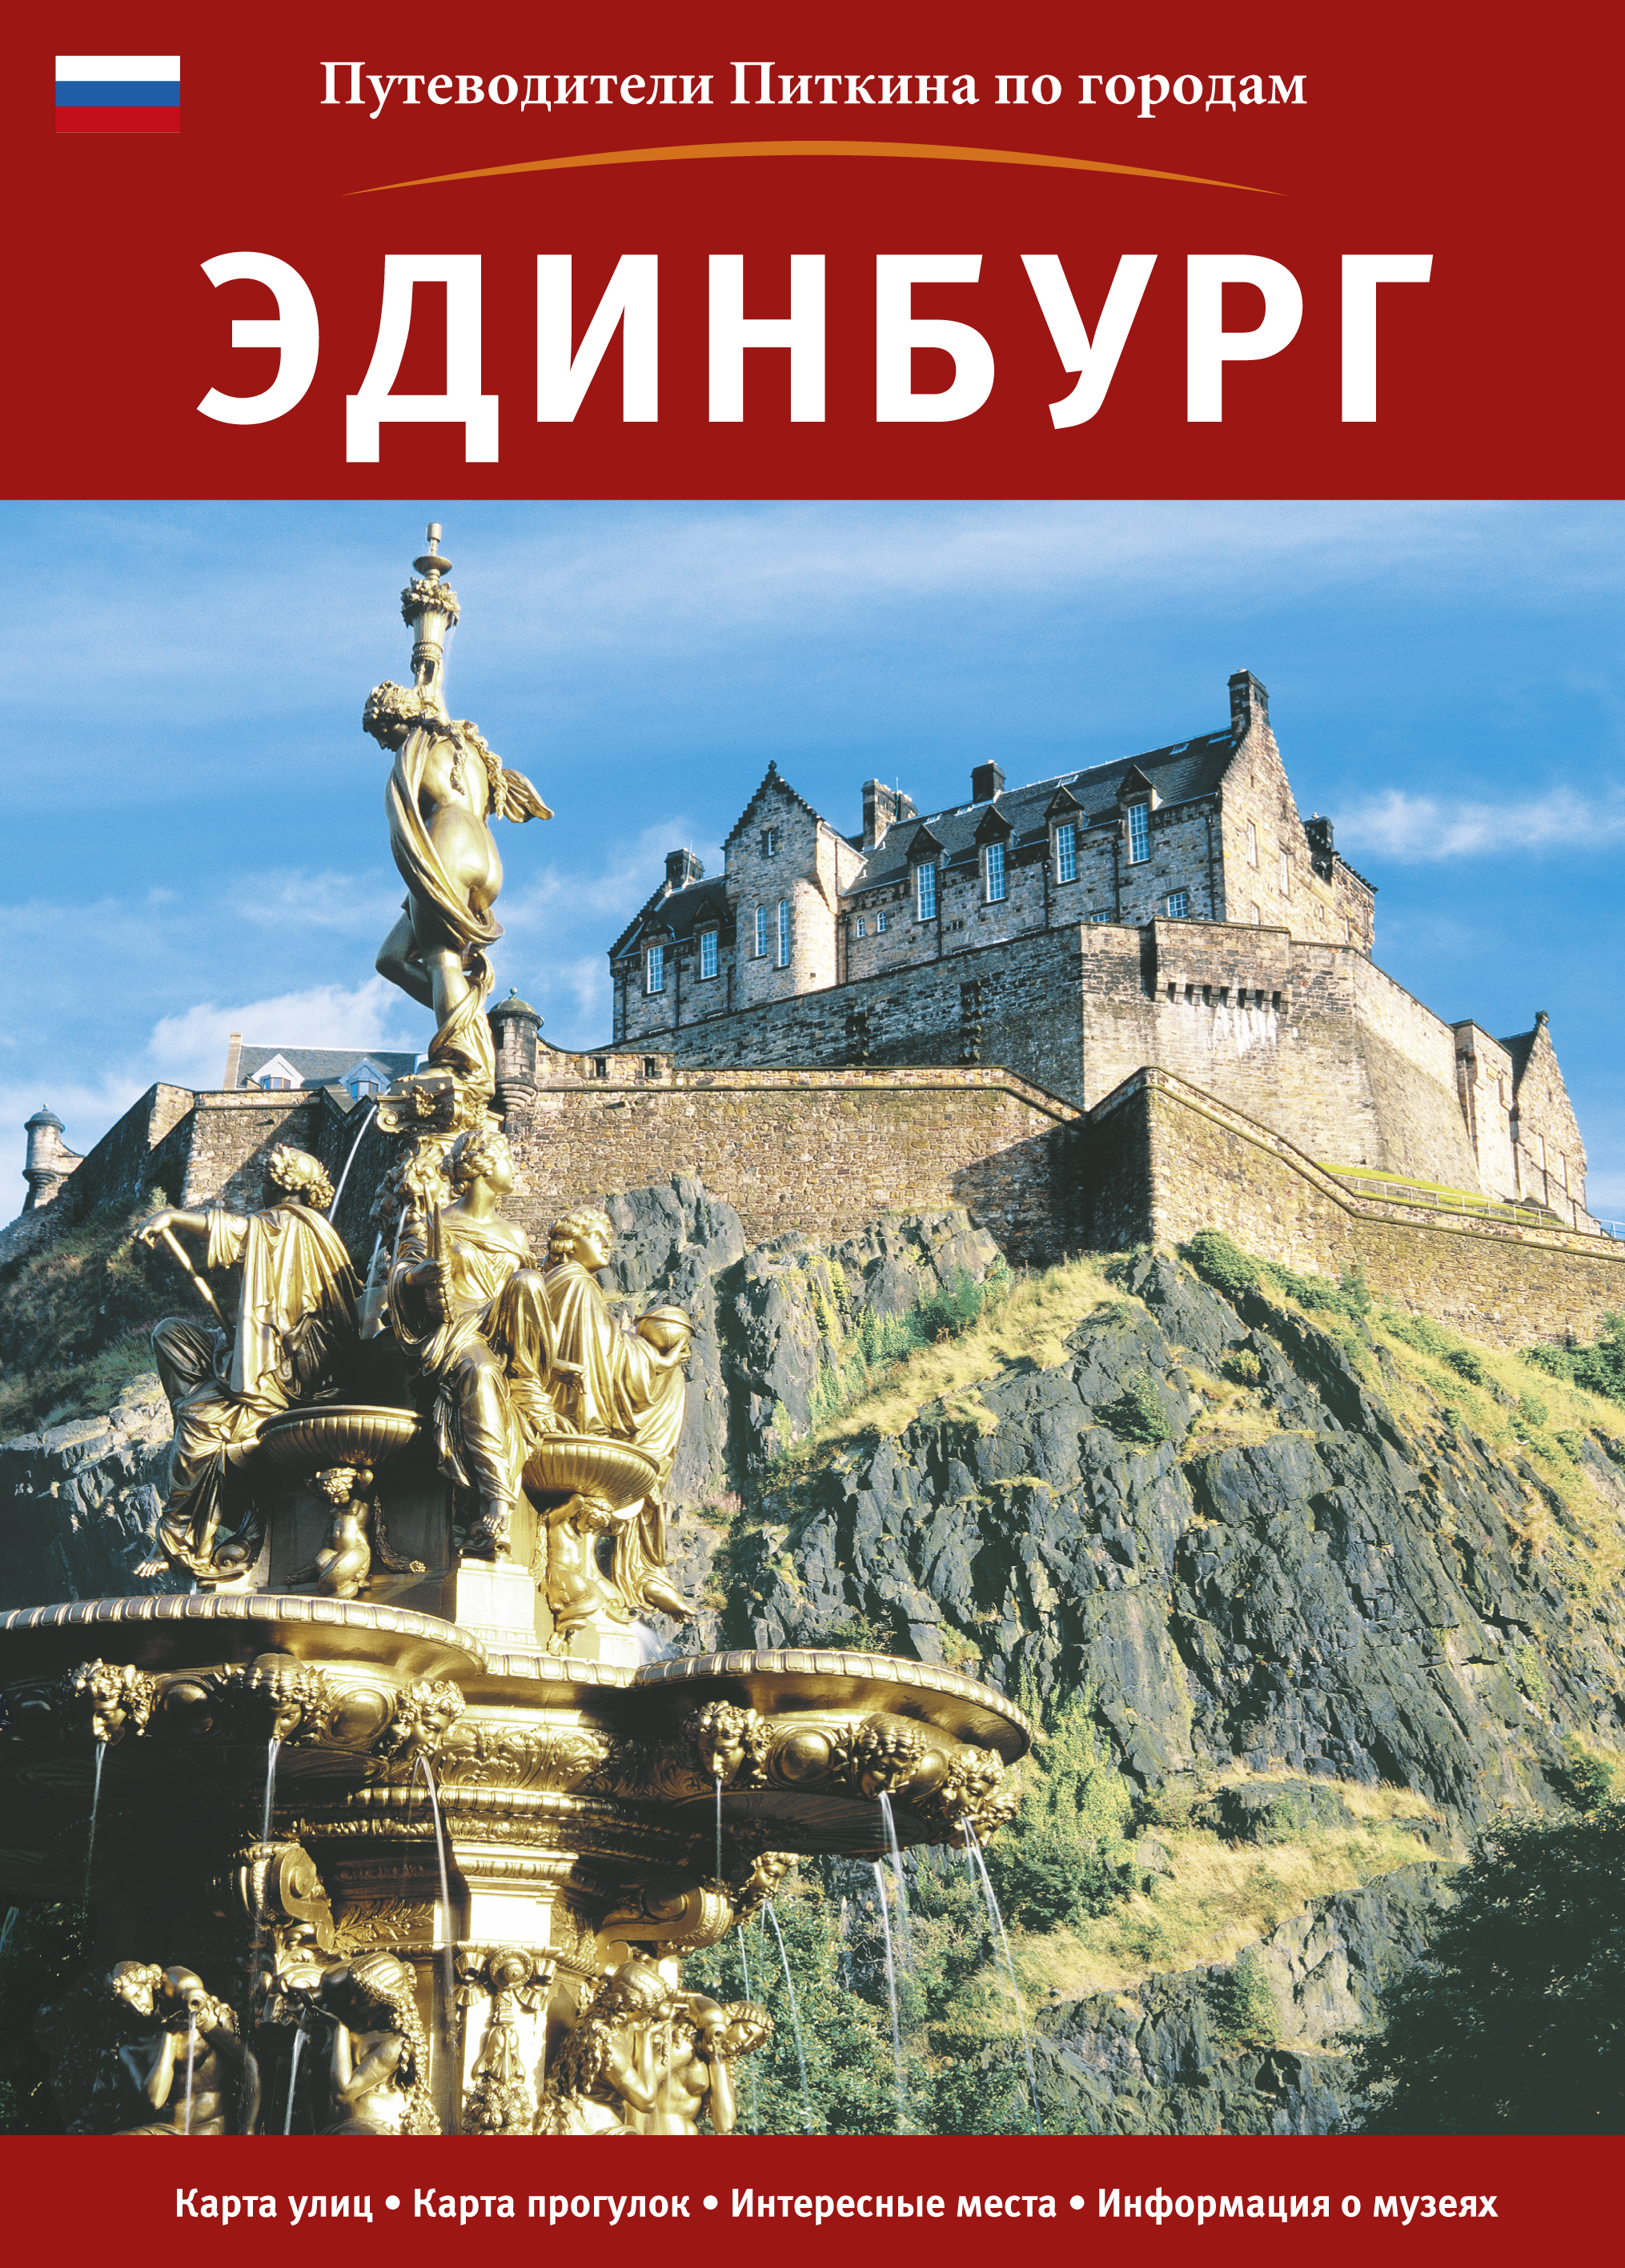 Edinburgh City Guide – Russian